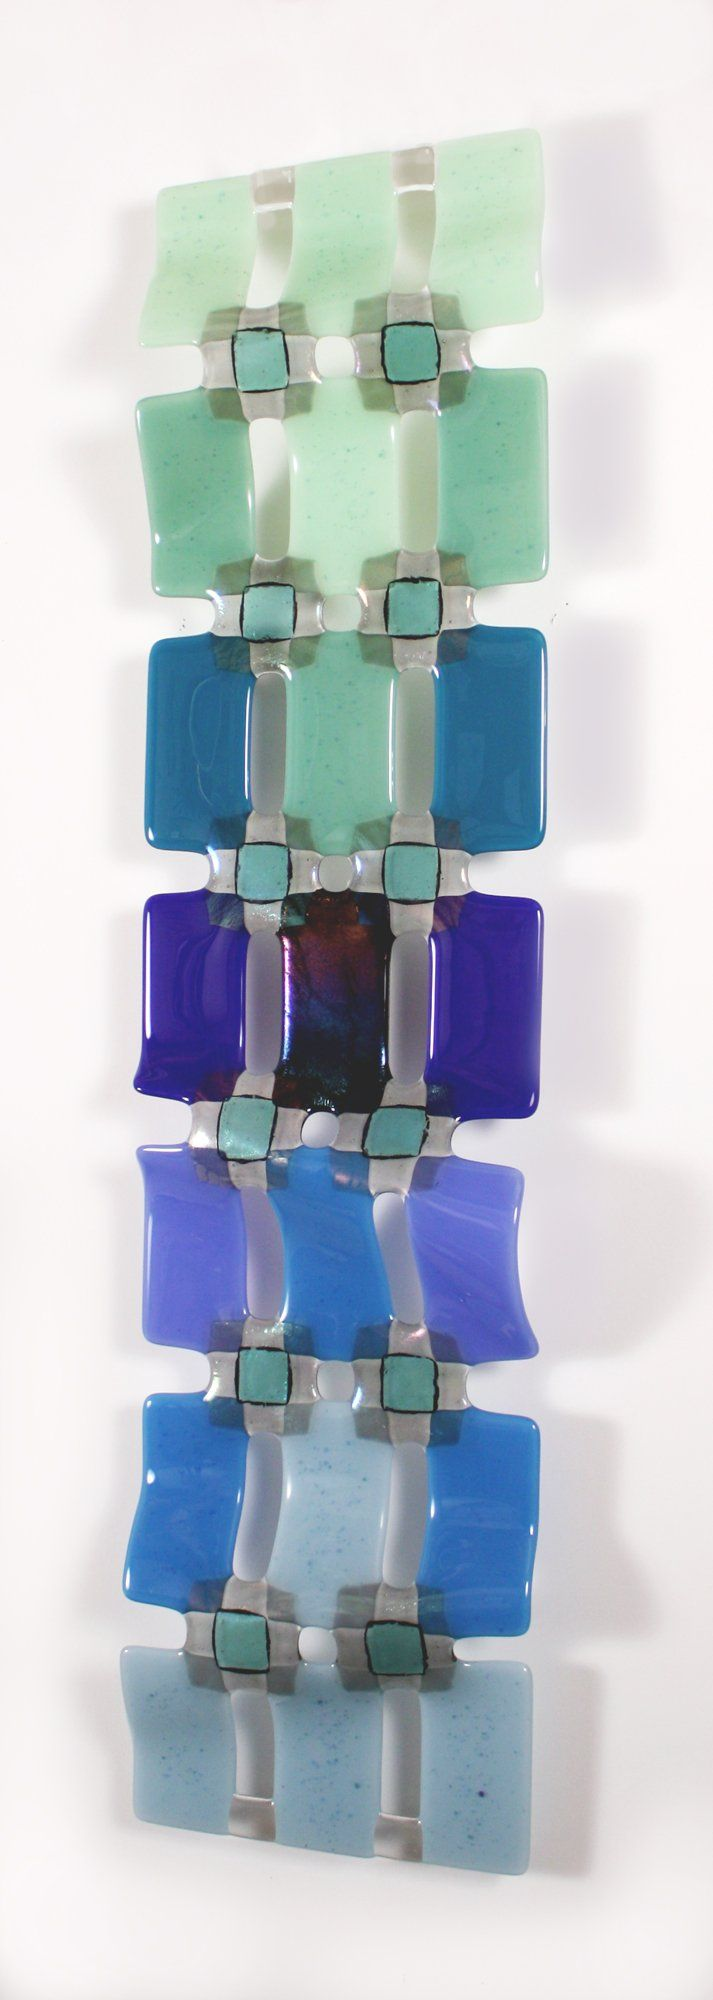 Wall art 100 x 70 - Graduated Grid Green To Blue By Nina Cambron Art Glass Wall Sculpture